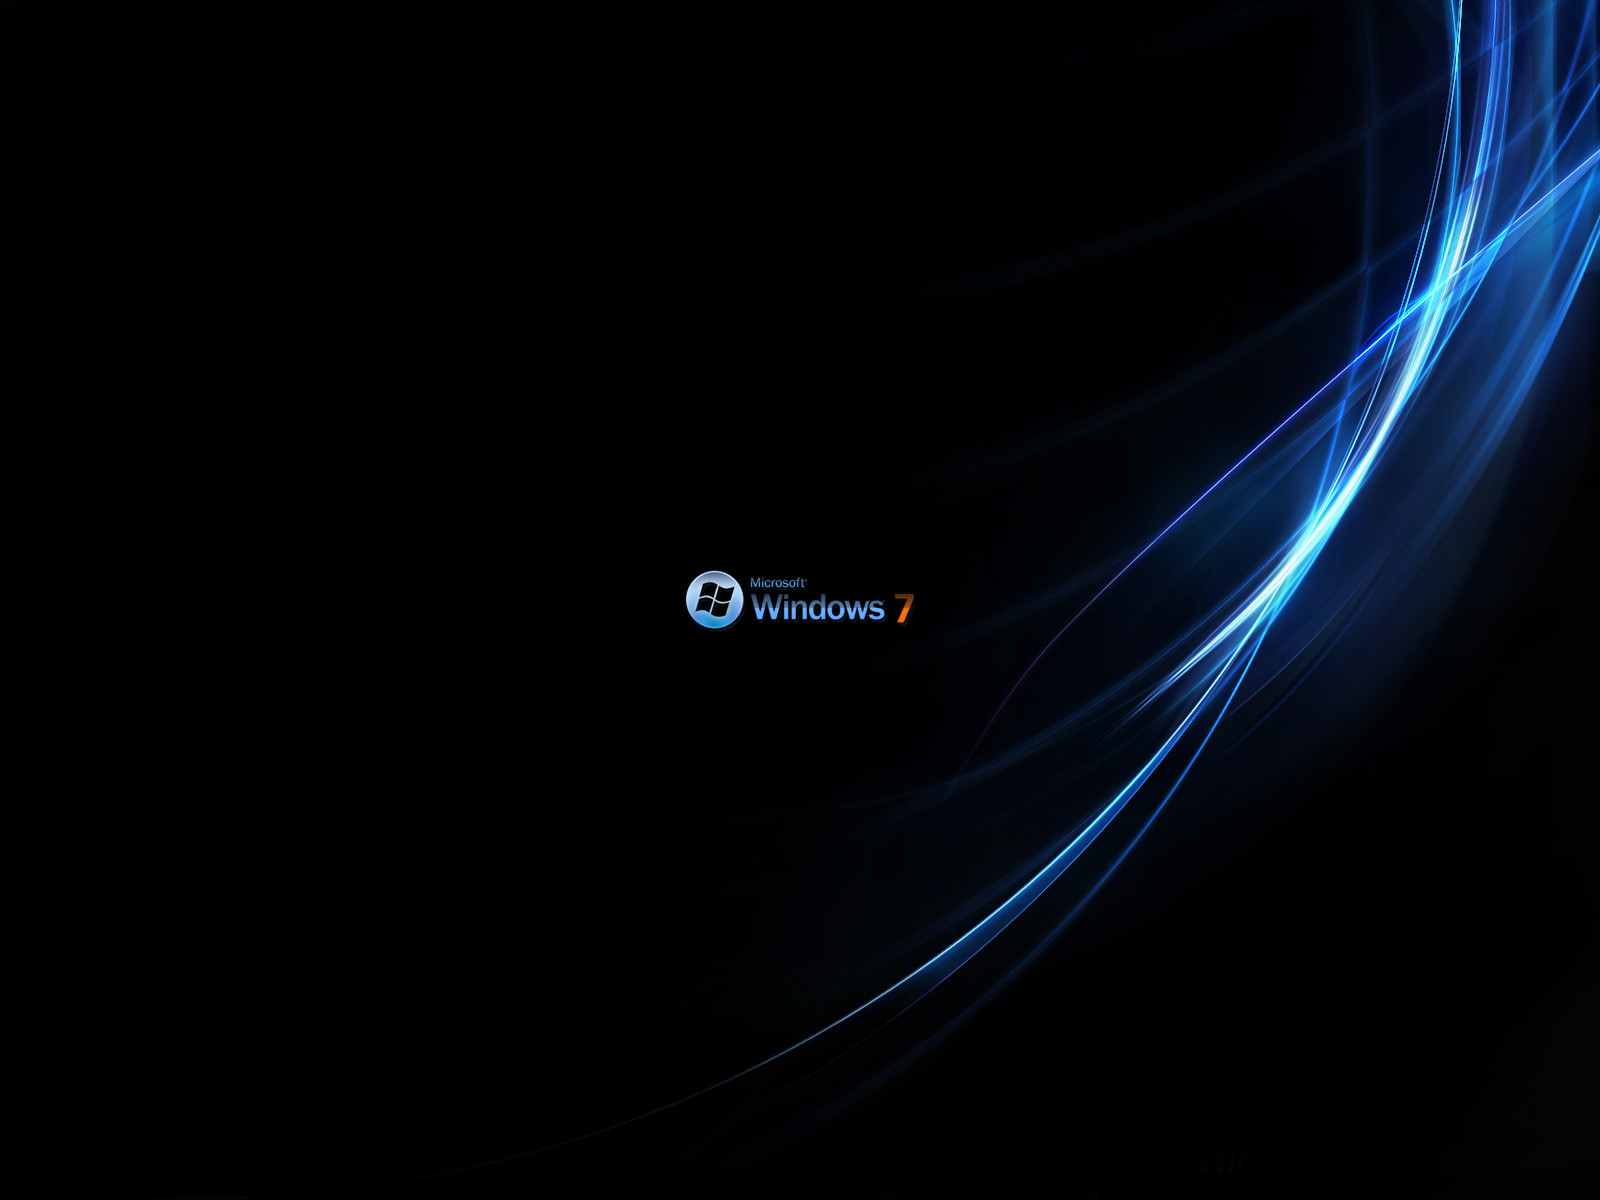 Windows 7 Rich Black Wallpapers | HD Wallpapers